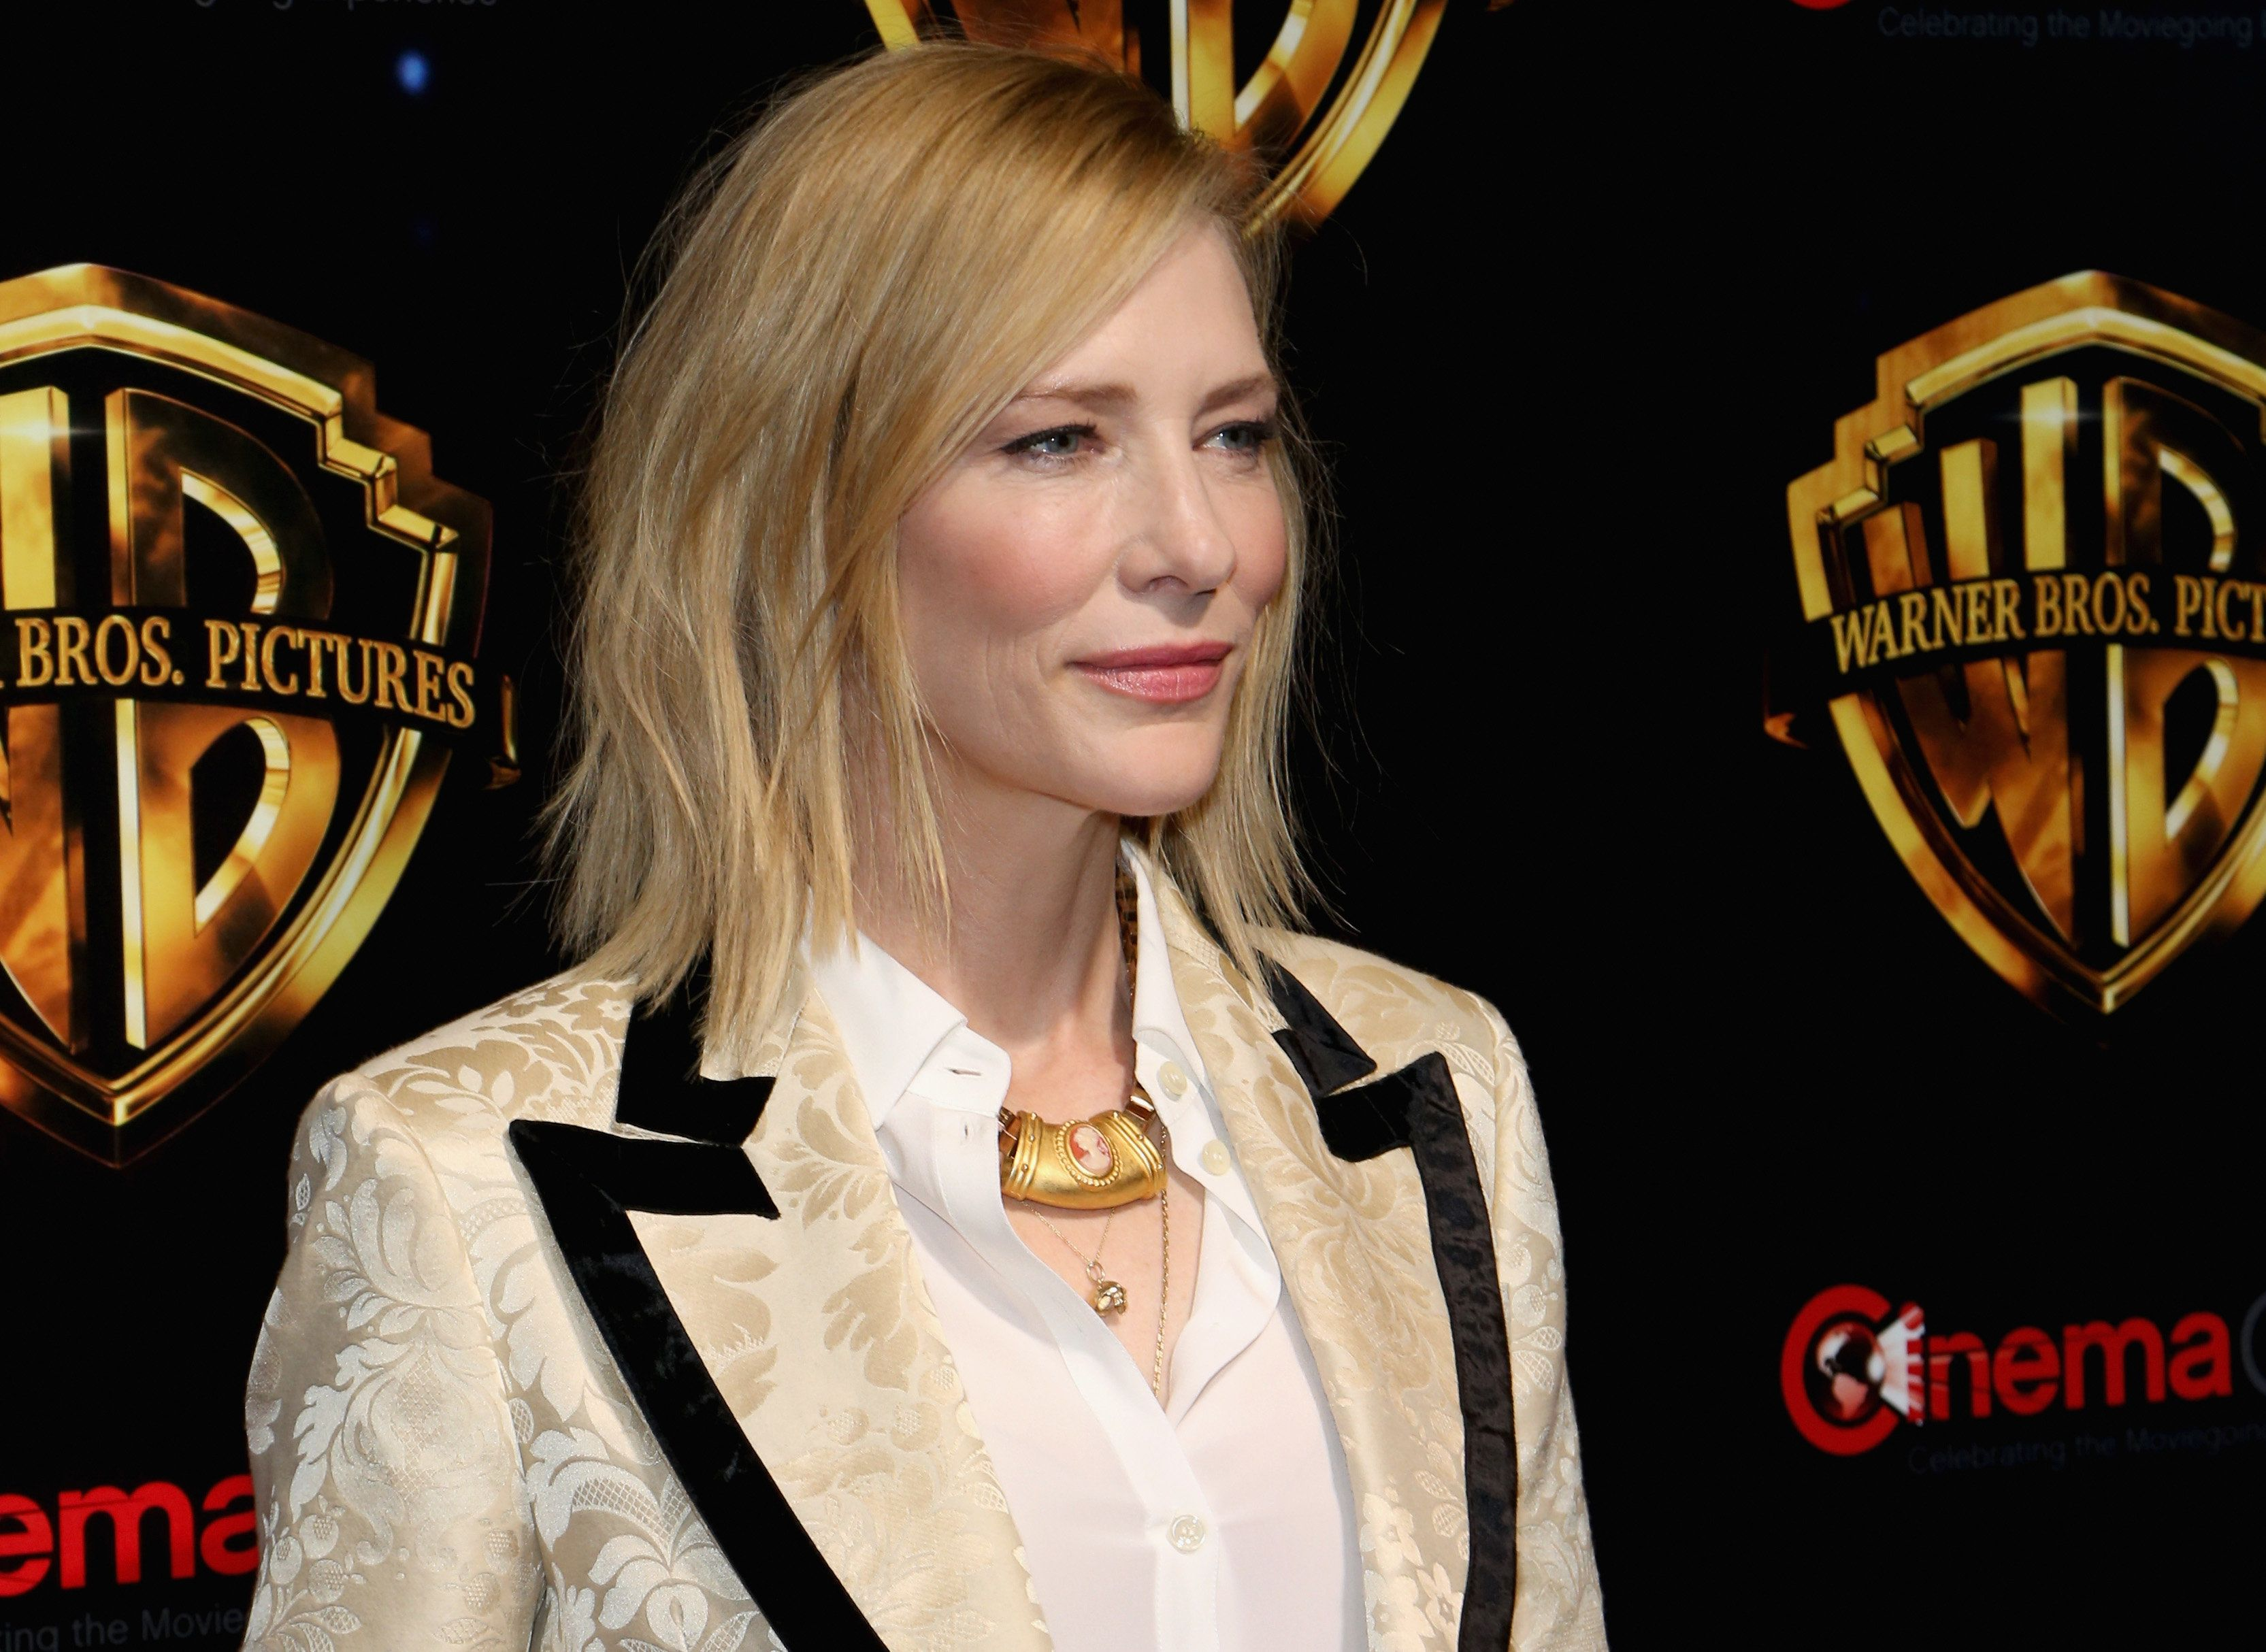 Cate Blanchett Reveals That Harvey Weinstein Sexually Harassed Her